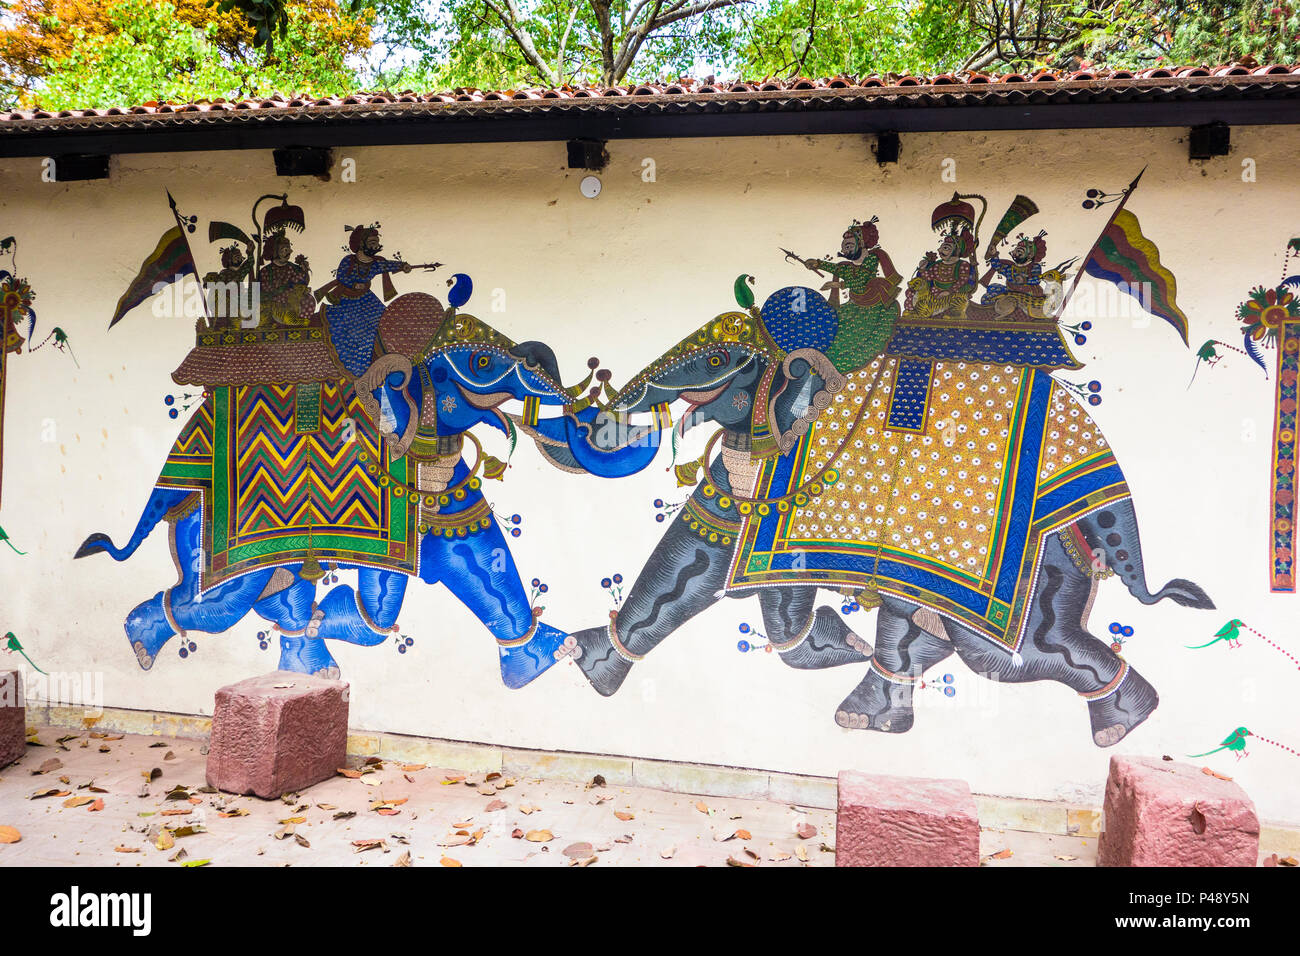 Exhibit of a Shekhavati painting with two nobles on caparisoned elephants engaging in battle in the National Crafts Museum, New Delhi, India Stock Photo